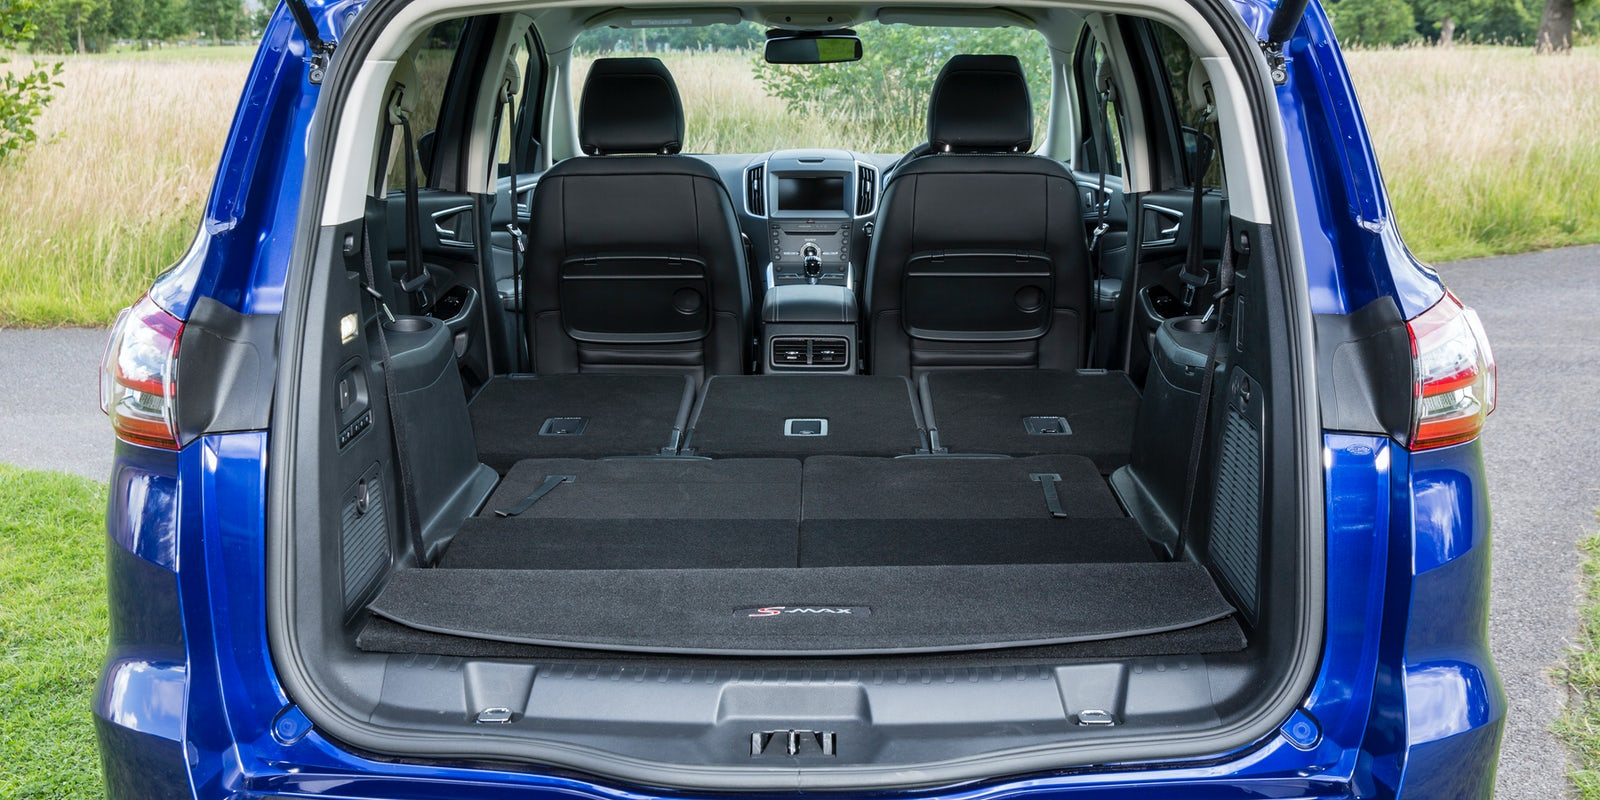 Ford S-Max interior and infotainment | carwow